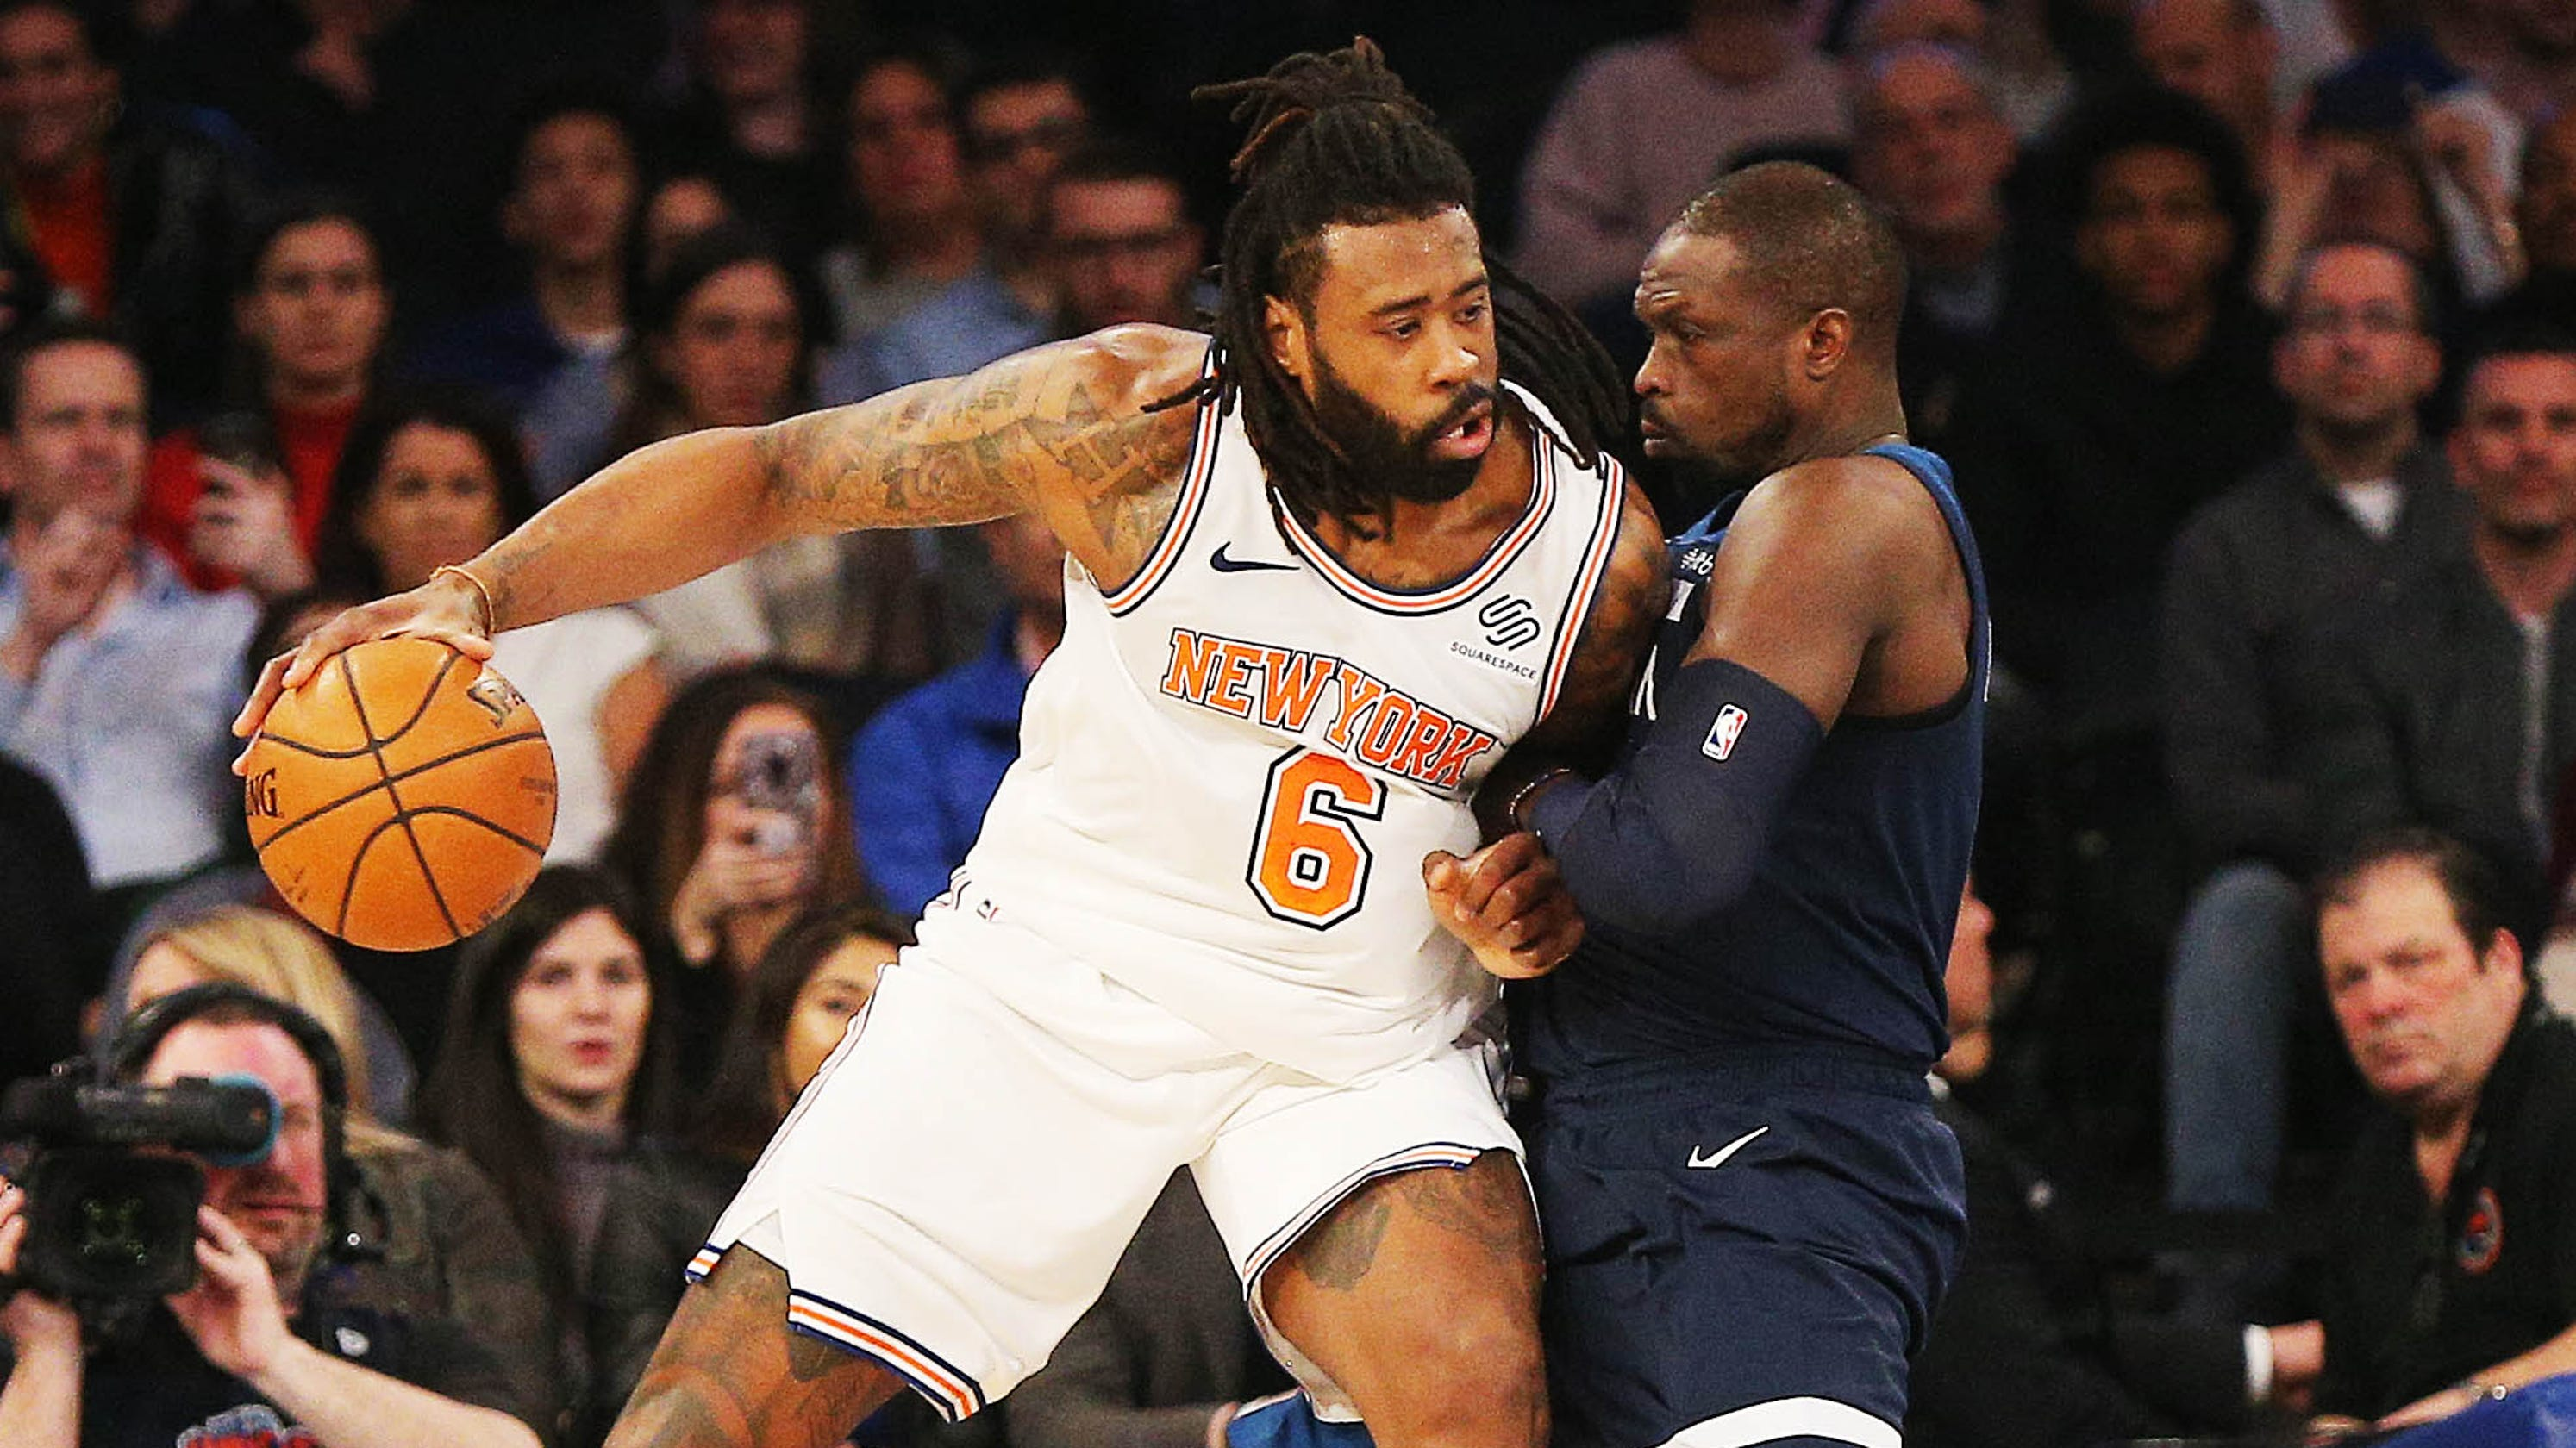 504aaffeb7fb30 New York Knicks close to getting DeAndre Jordan back on court